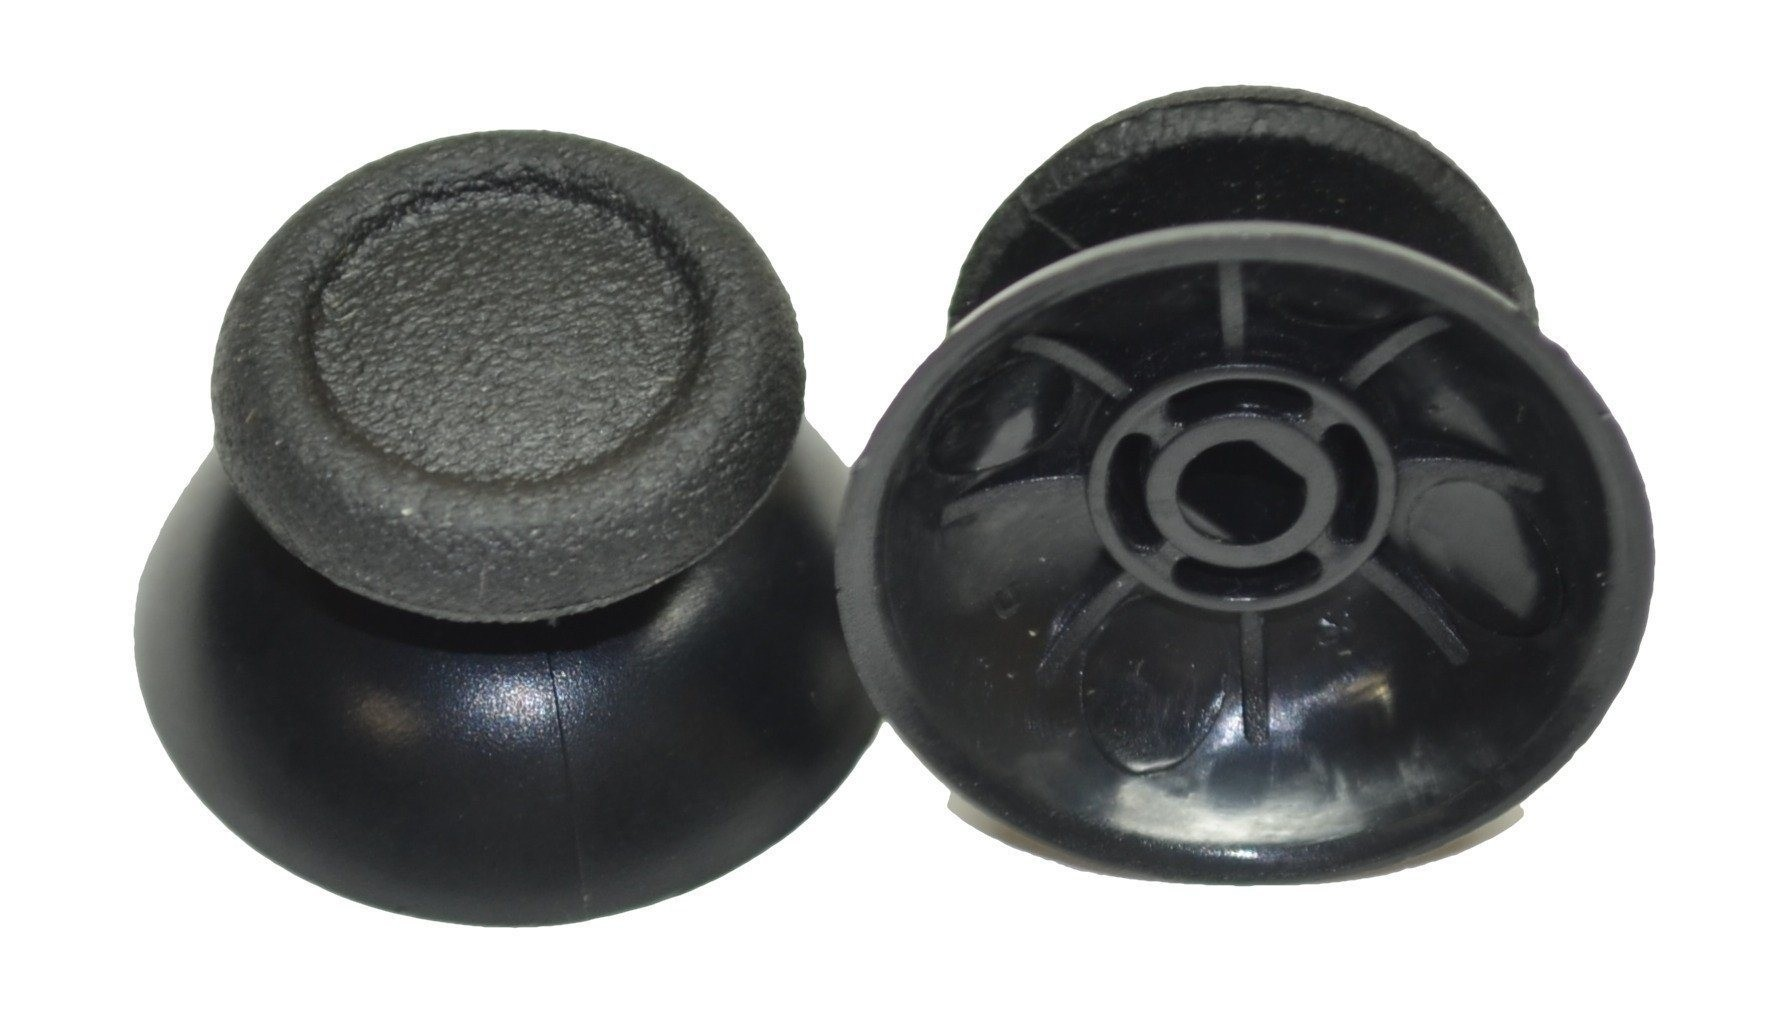 PS4 Controller Analog Stick Replacement Caps